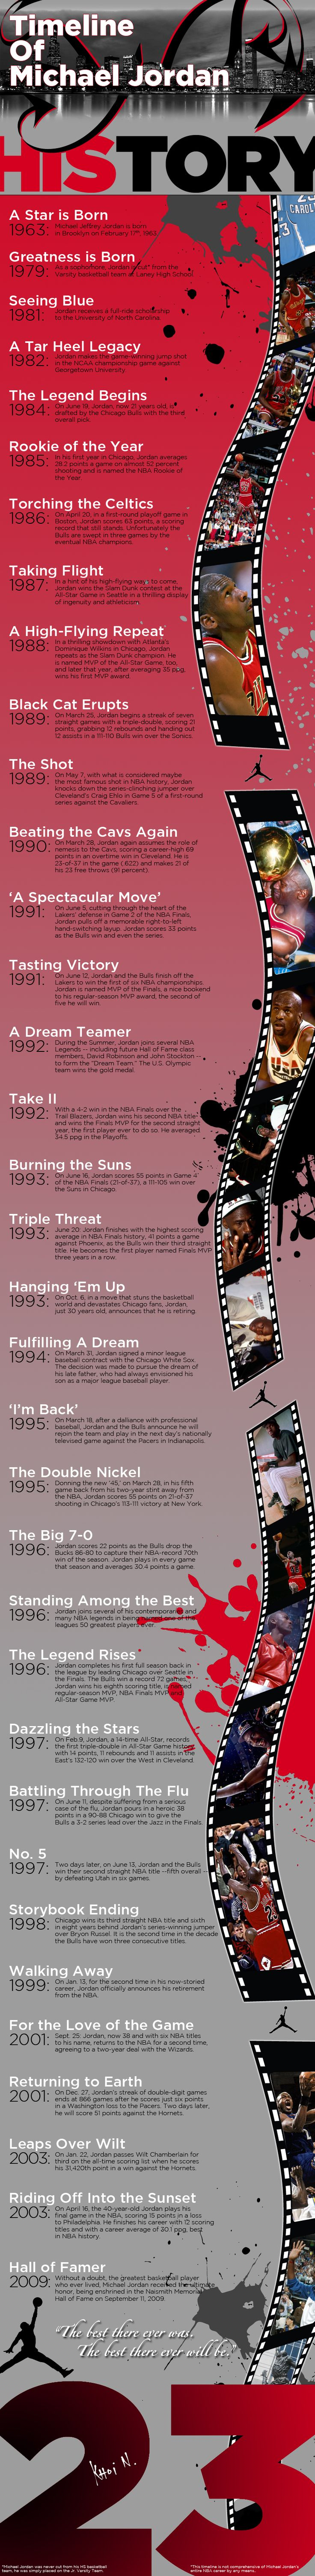 The Timeline of MichaelJordan - Blog About Infographics and Data Visualization - Cool Infographics